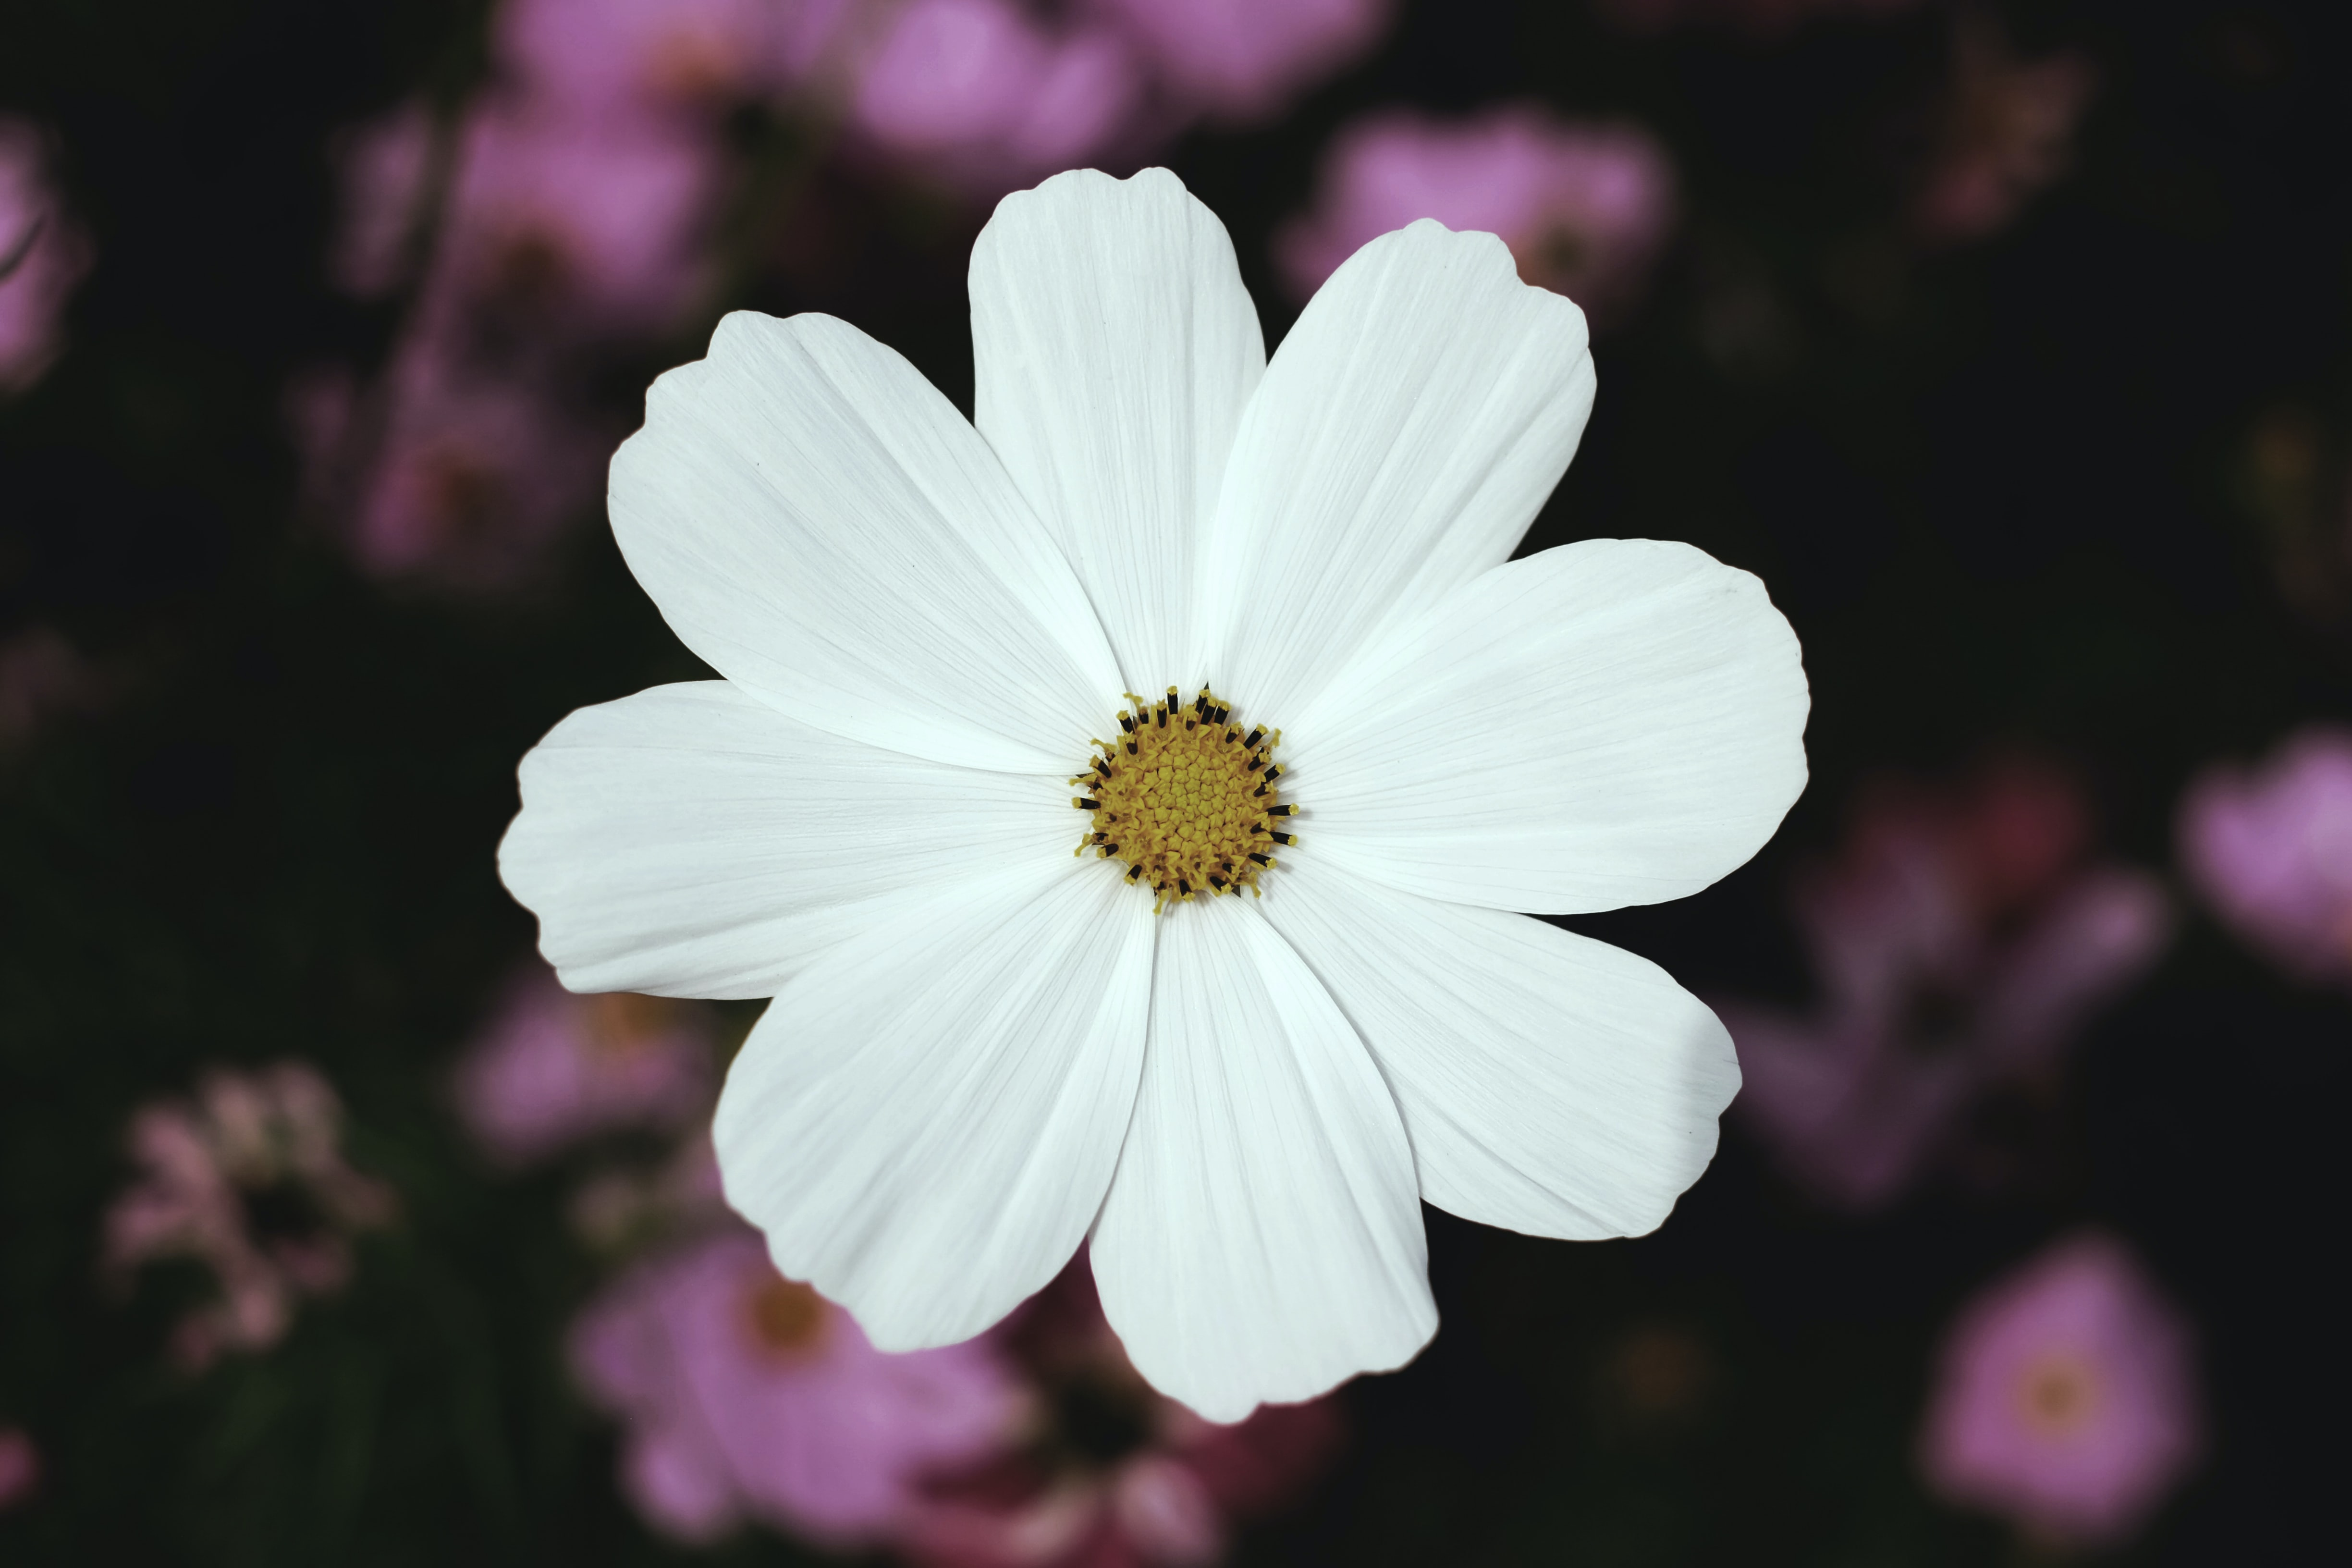 An overhead shot of a white cosmos flower